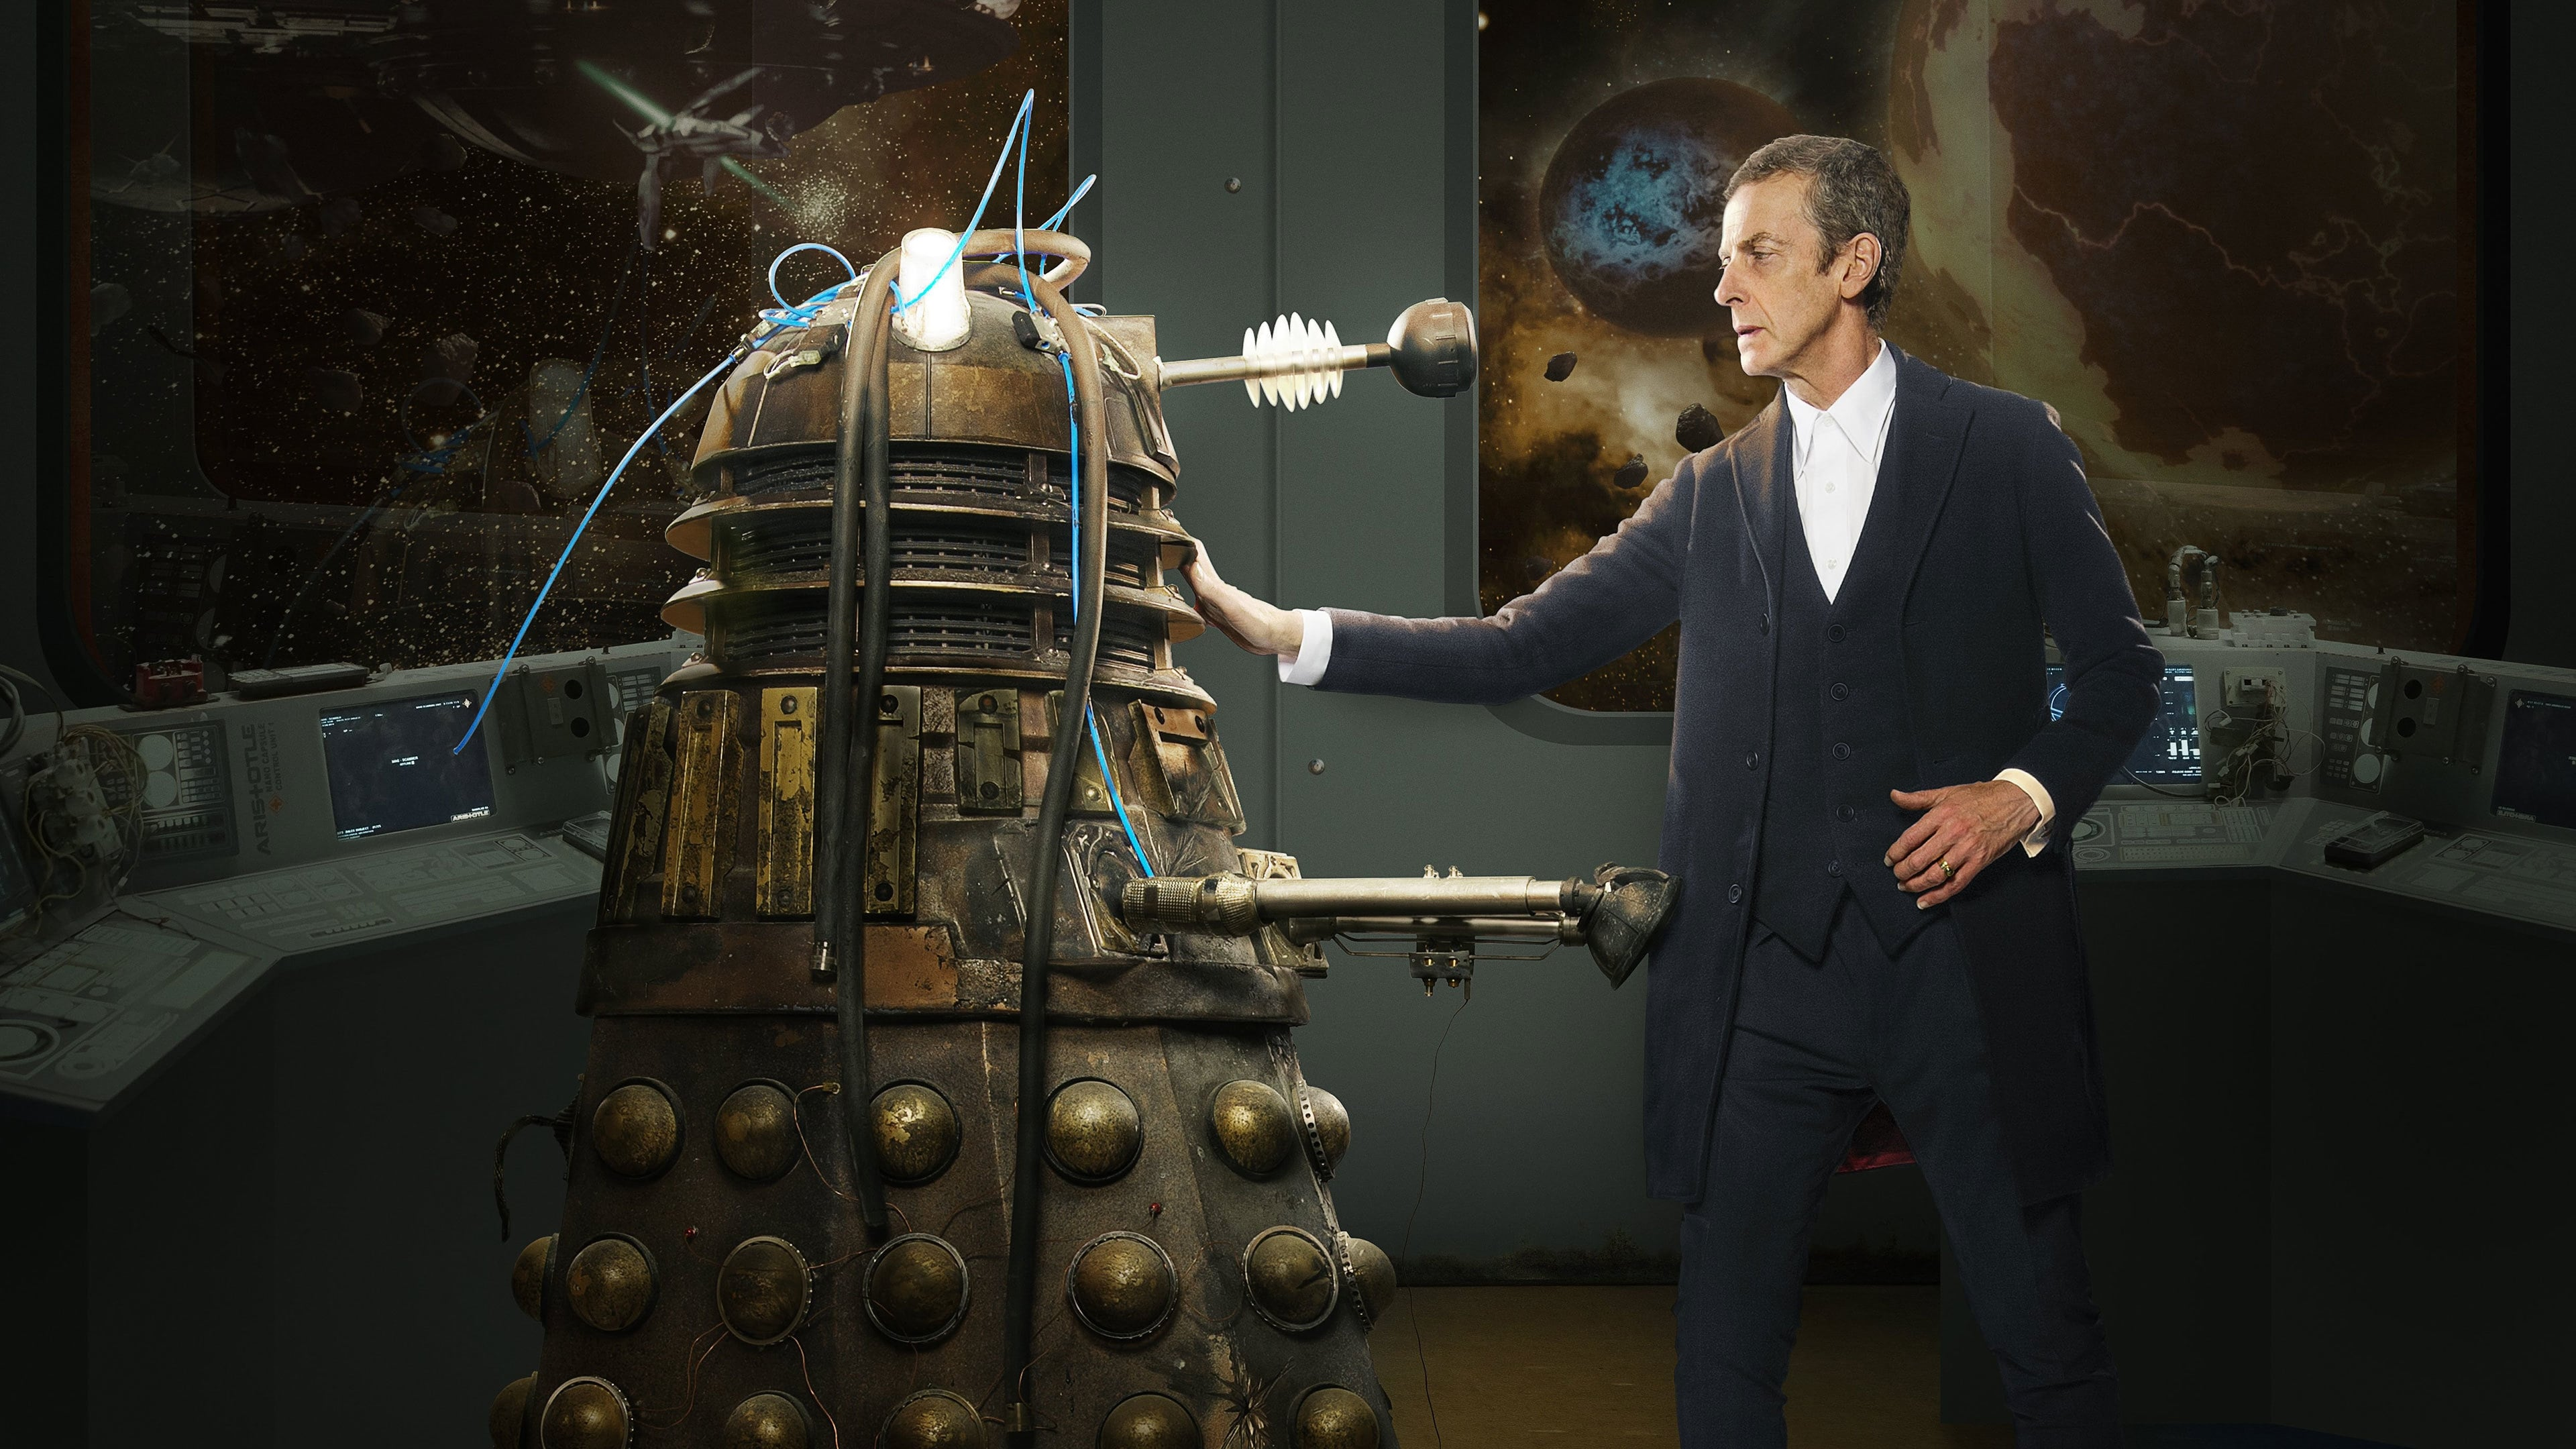 Doctor Who - Season 8 Episode 2 : Into the Dalek